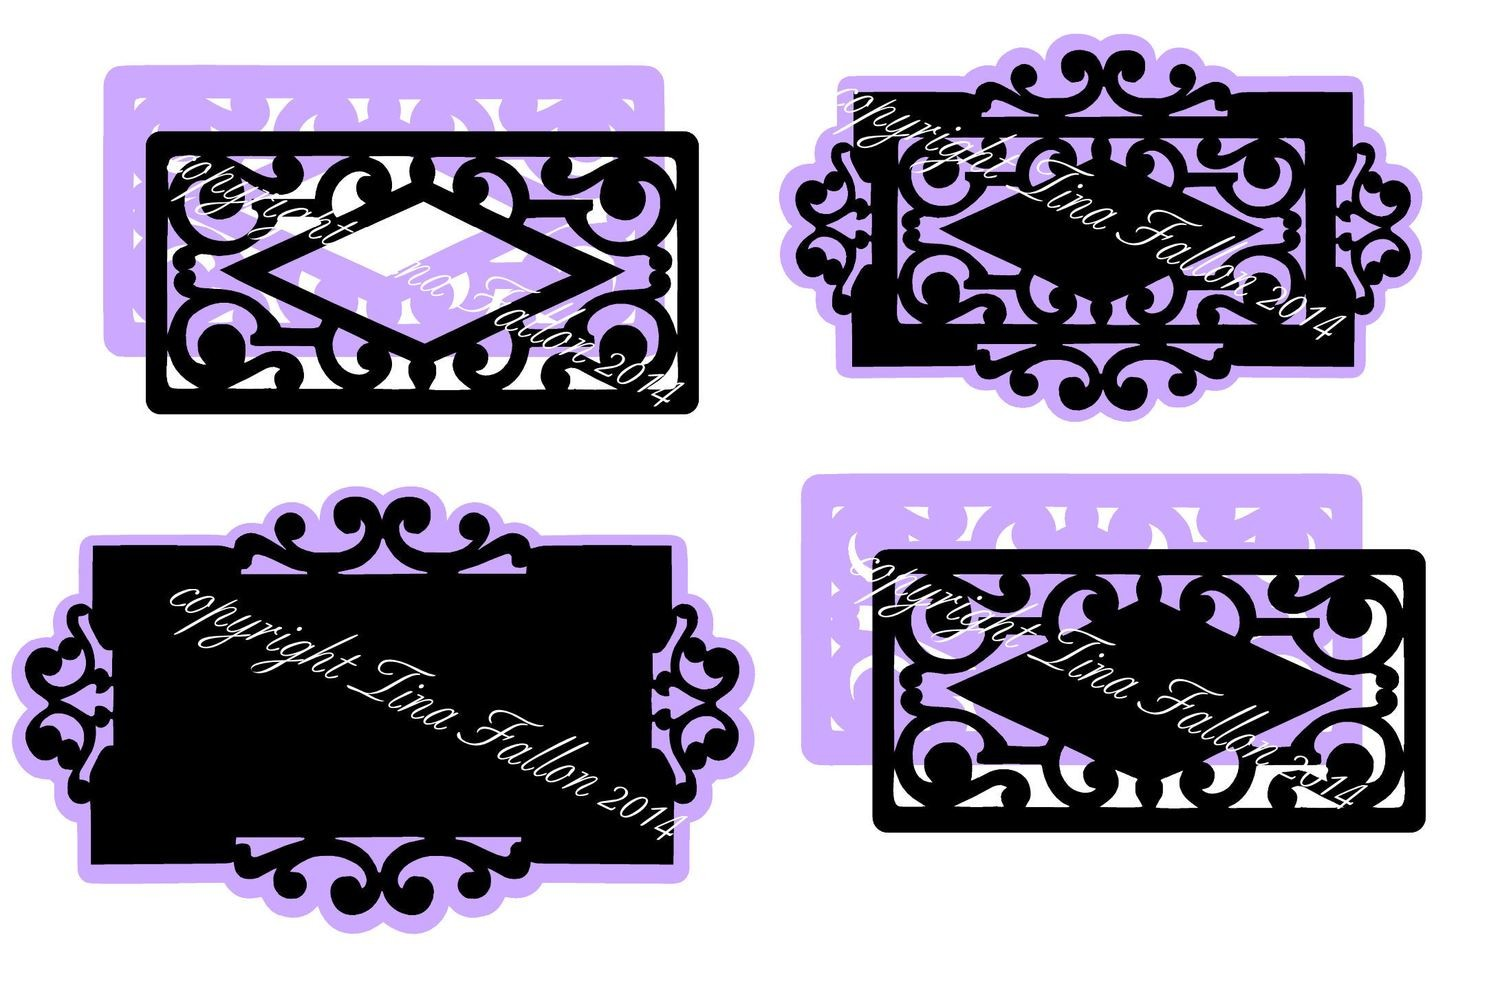 4 Decorative Panels / Frames with undermats